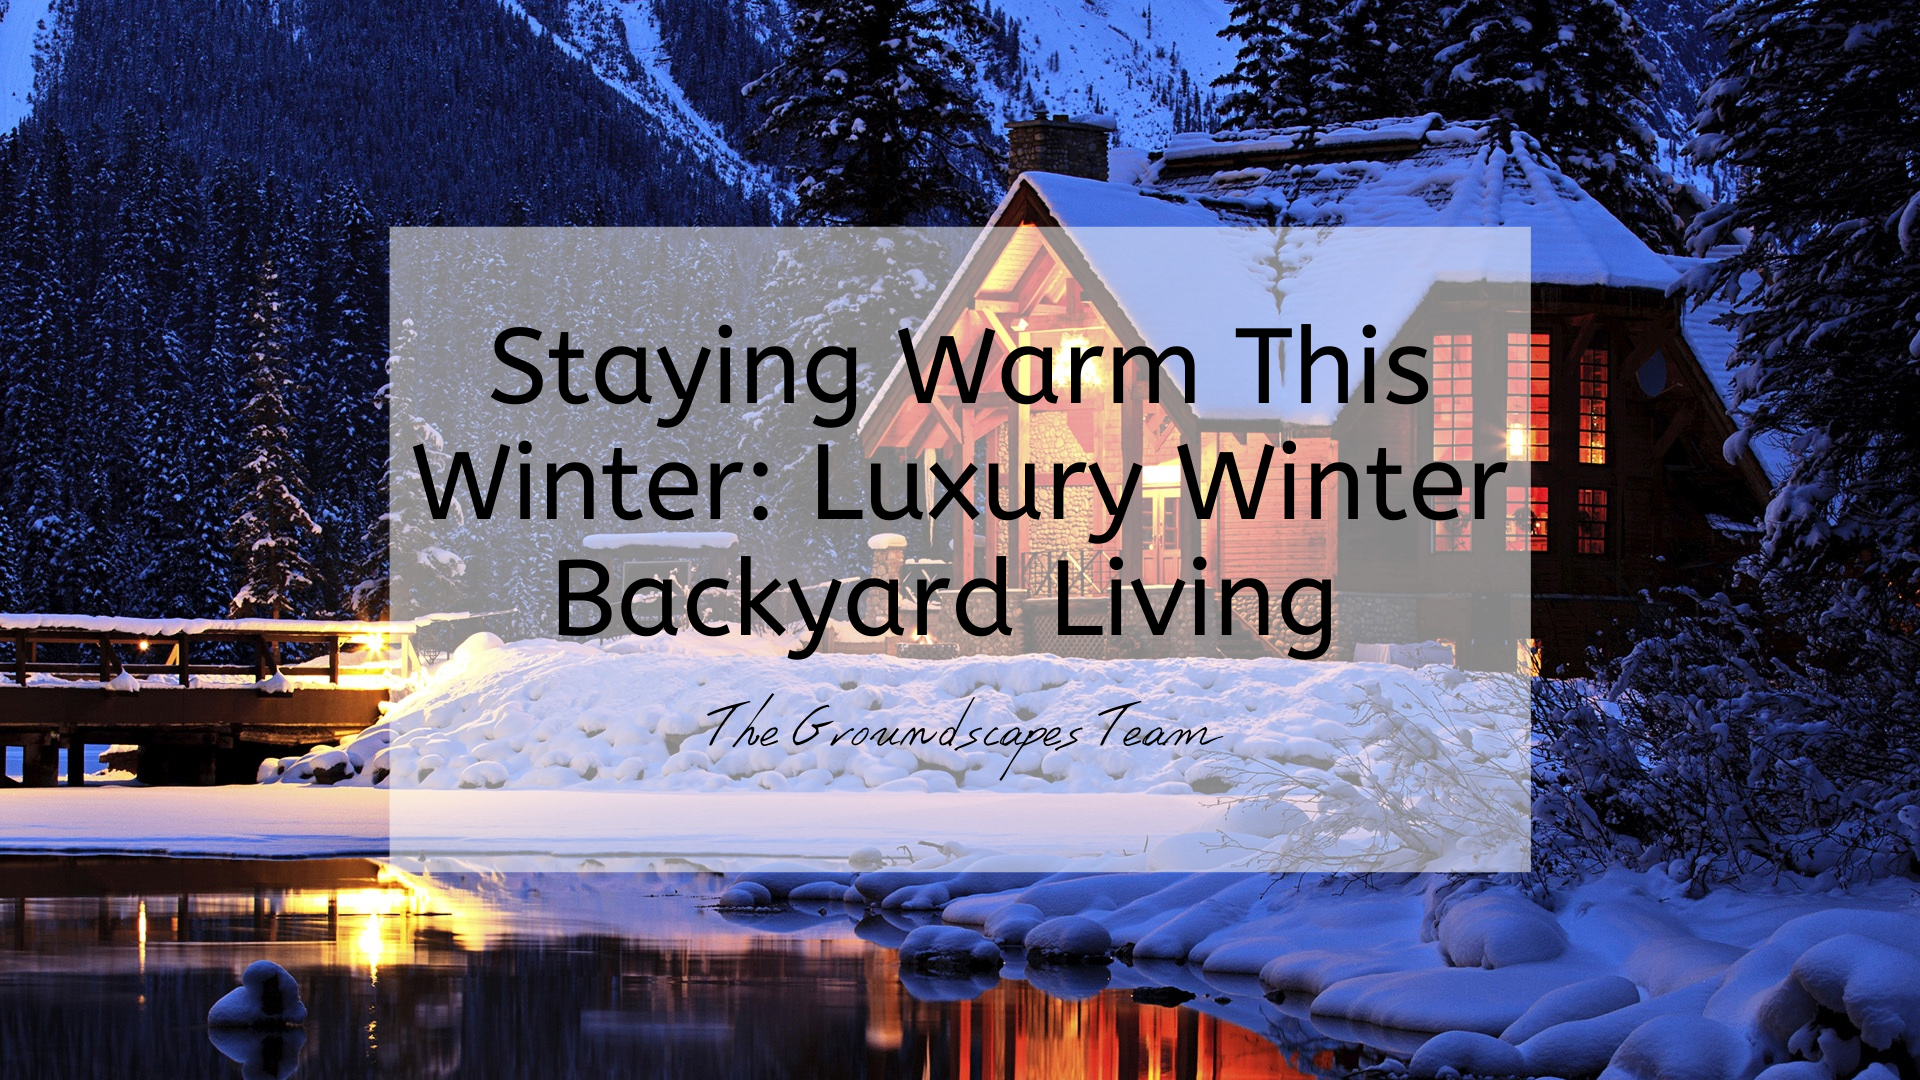 Staying Warm This Winter: Luxury Winter Backyard Living